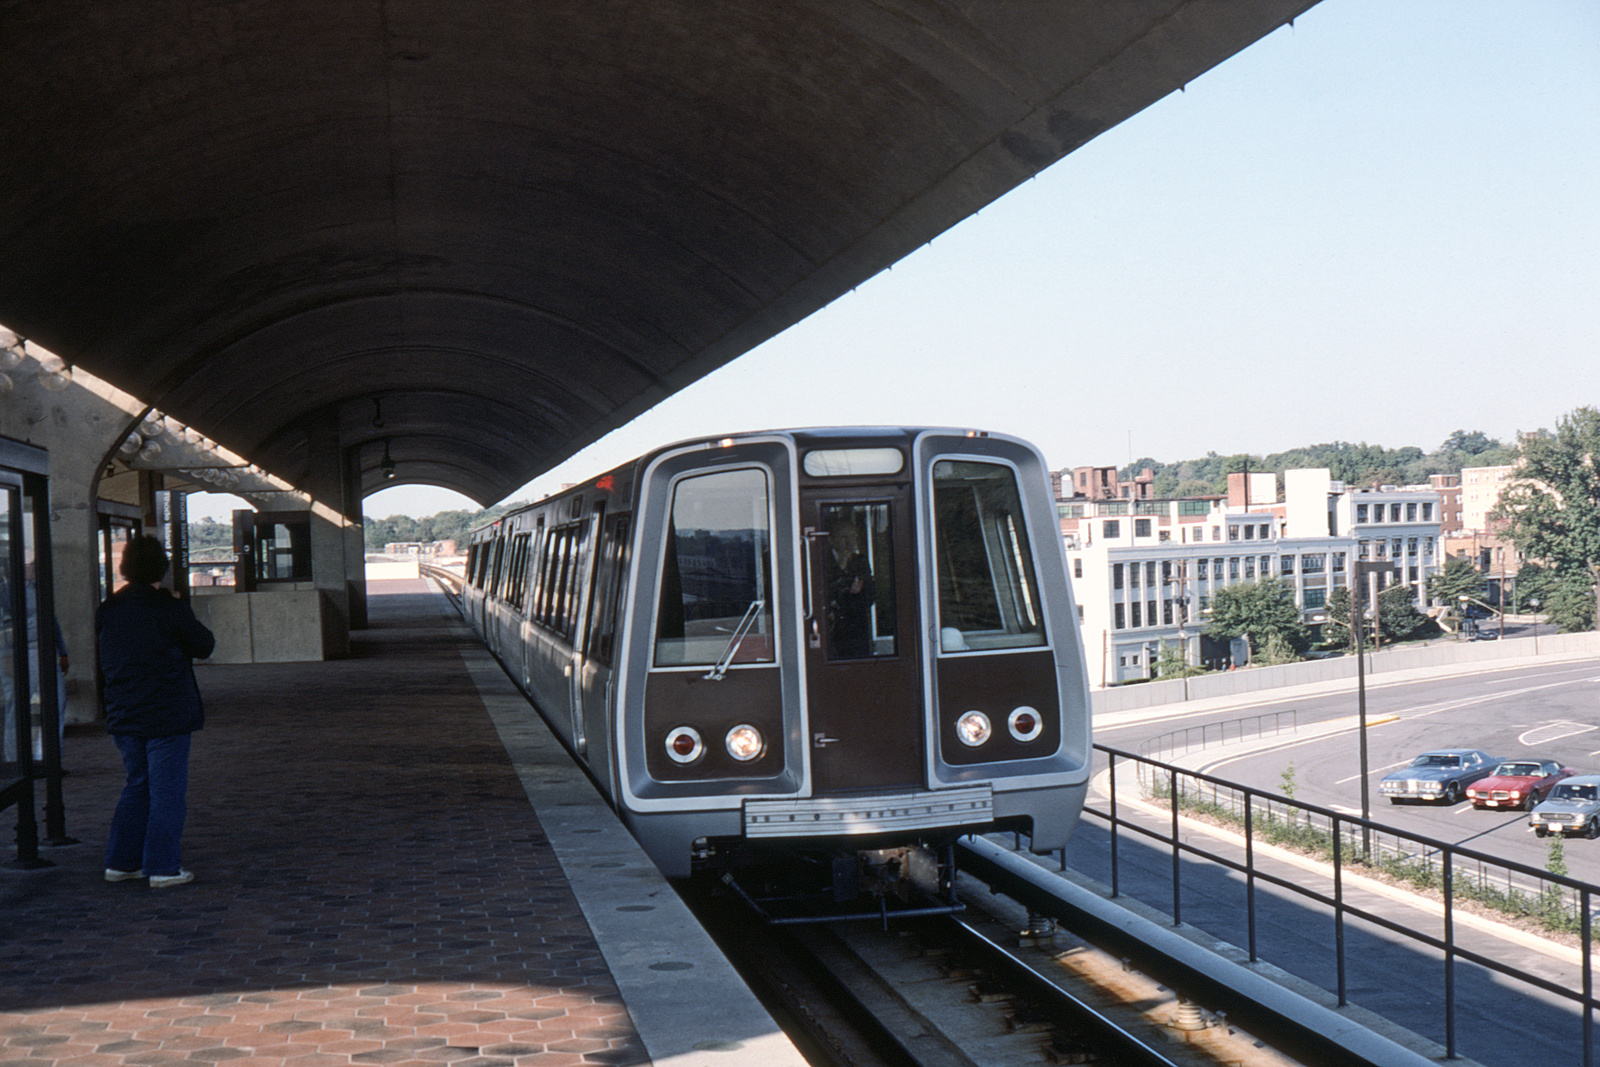 (356k, 1044x707)<br><b>Country:</b> United States<br><b>City:</b> Washington, D.C.<br><b>System:</b> Washington Metro (WMATA)<br><b>Line:</b> WMATA Red Line<br><b>Location:</b> Rhode Island Avenue <br><b>Collection of:</b> David Pirmann<br><b>Date:</b> 4/1976<br><b>Viewed (this week/total):</b> 20 / 5197